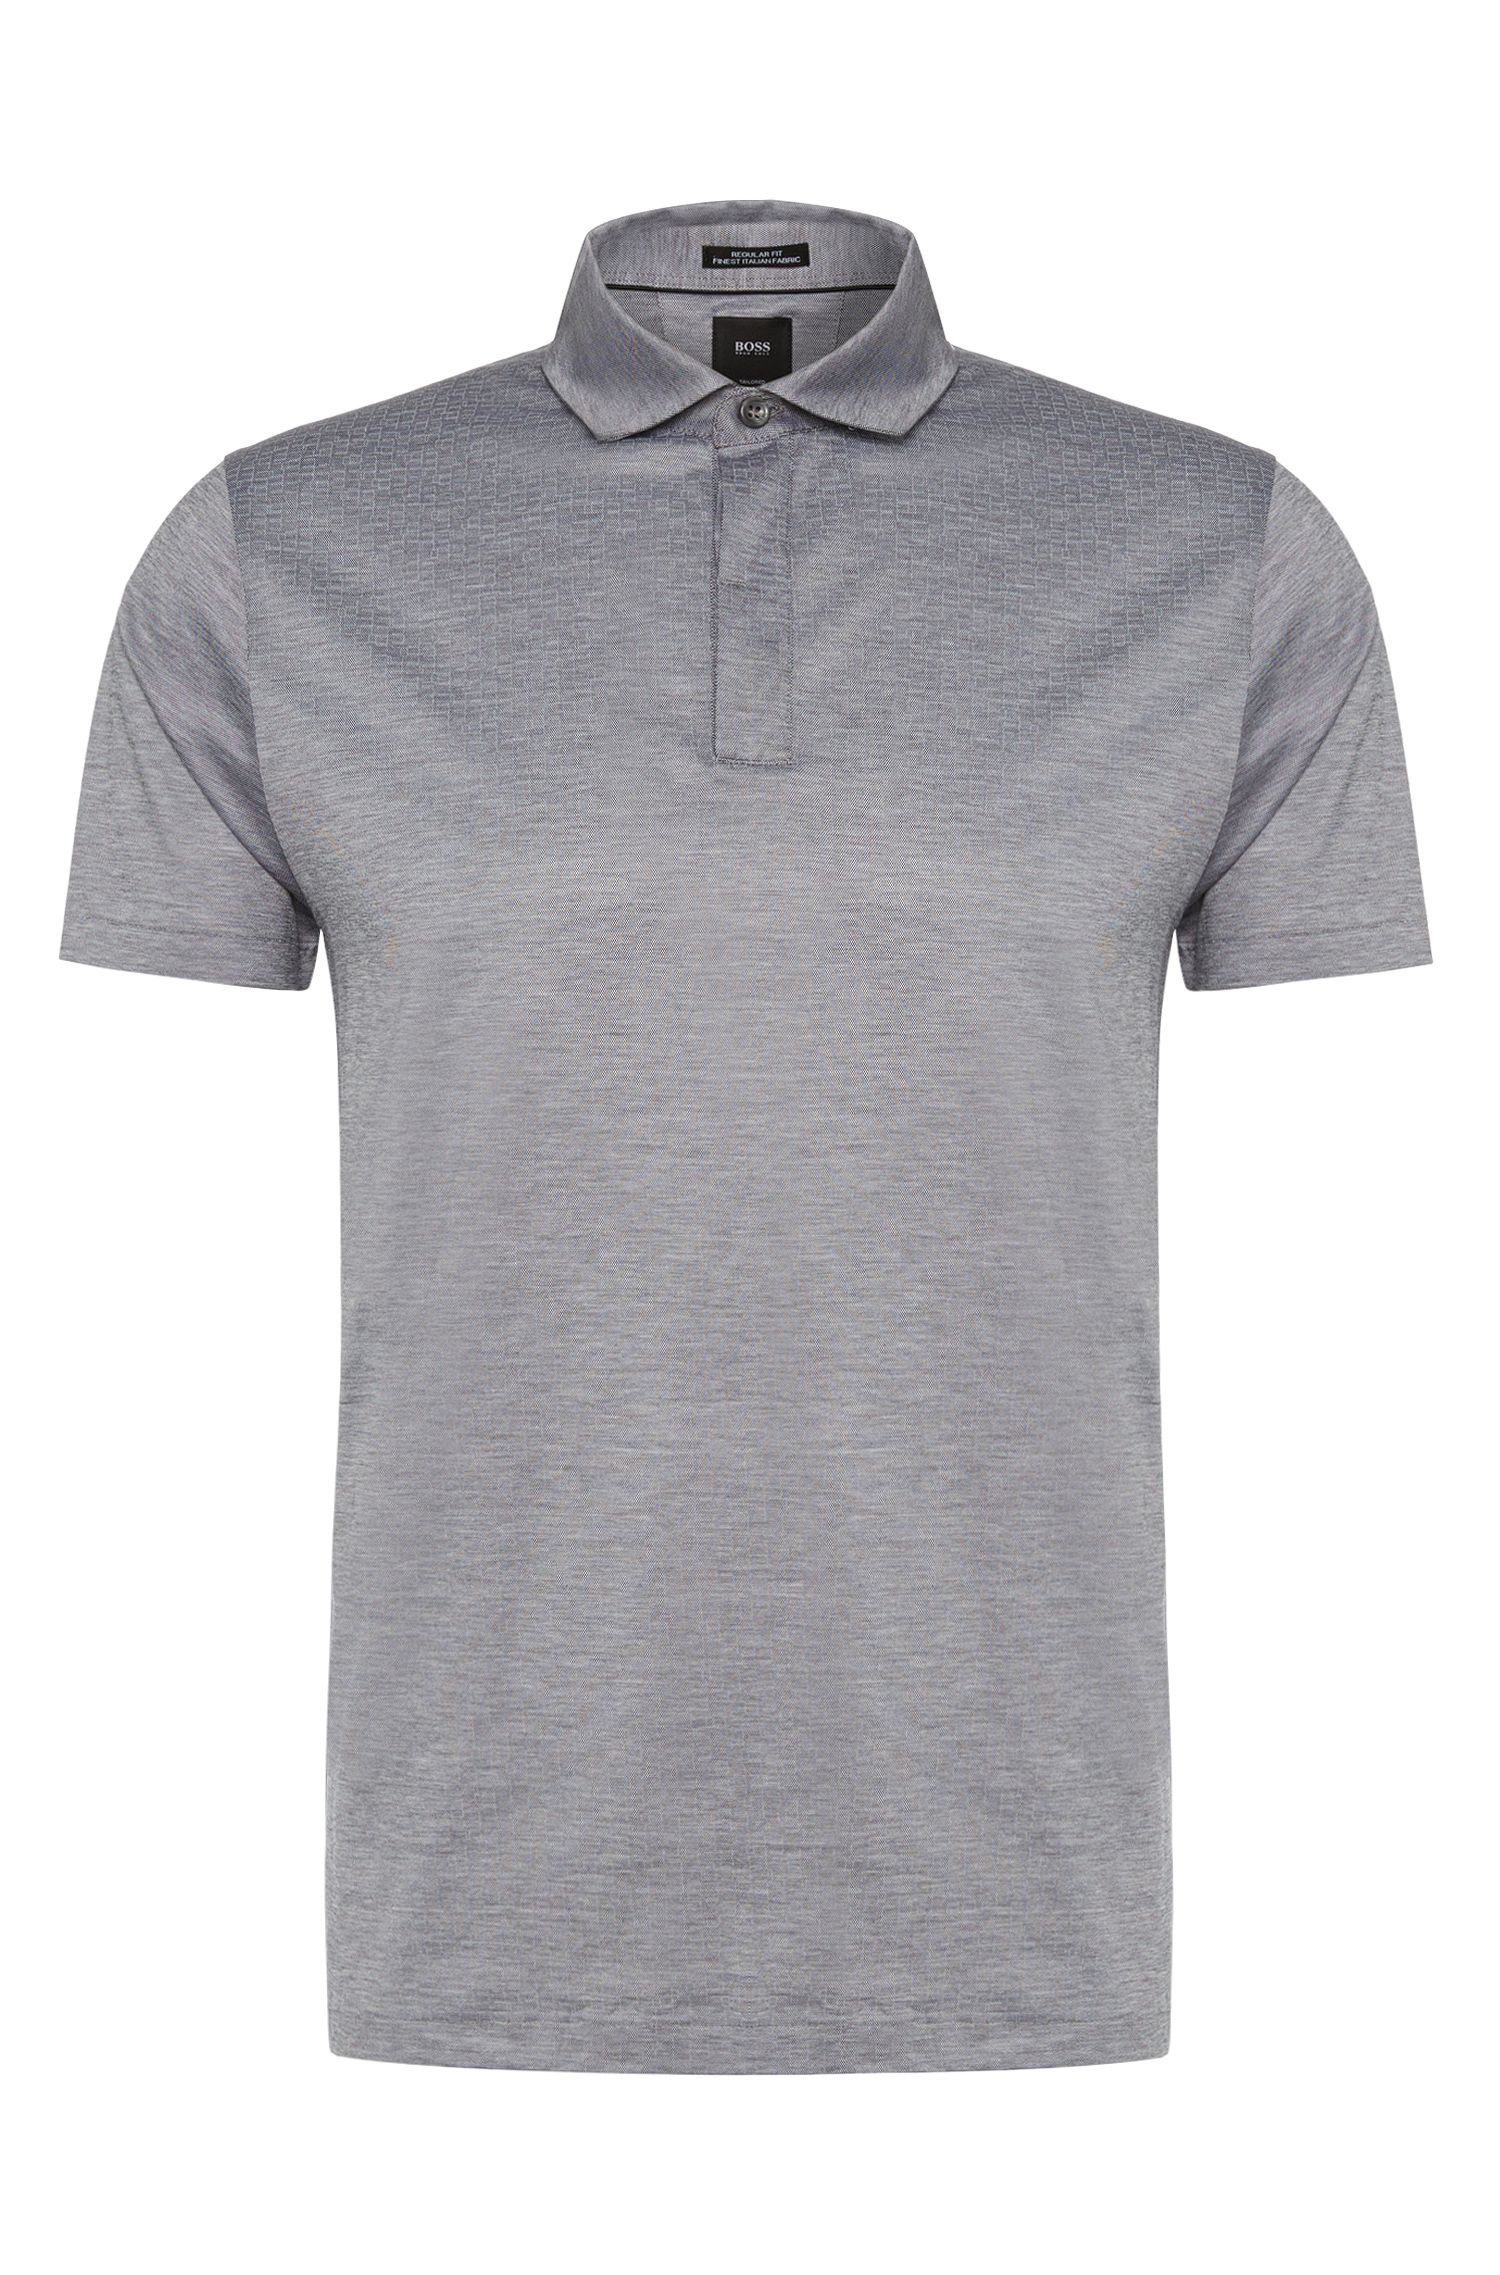 'T-Perkins' | Regular Fit, Italian Cotton Jacquard Polo Shirt